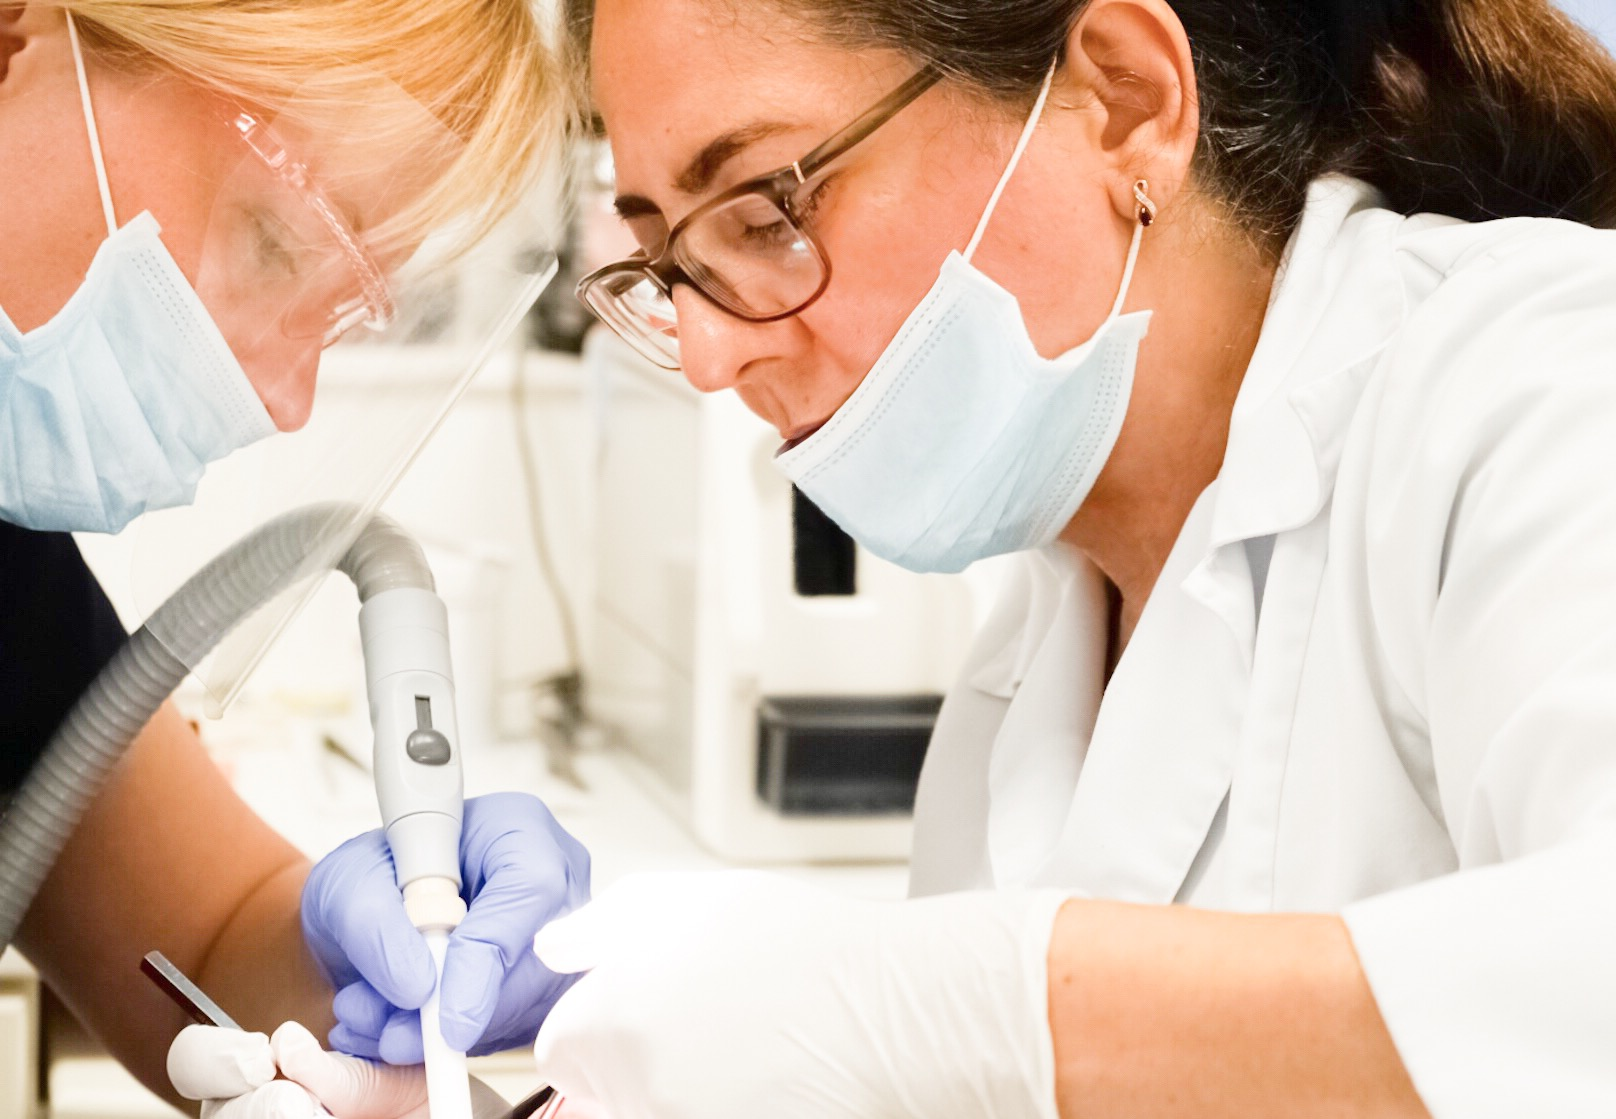 Restorative Dentistry - Restorative treatment has many applications particularly in broken or damaged teeth. Modern dental prosthetics are used to fully restore anatomical form and function of the affected teeth. Prosthetic teeth can be made to undetectably and seamlessly blend in and give you a brilliant, confident smile.